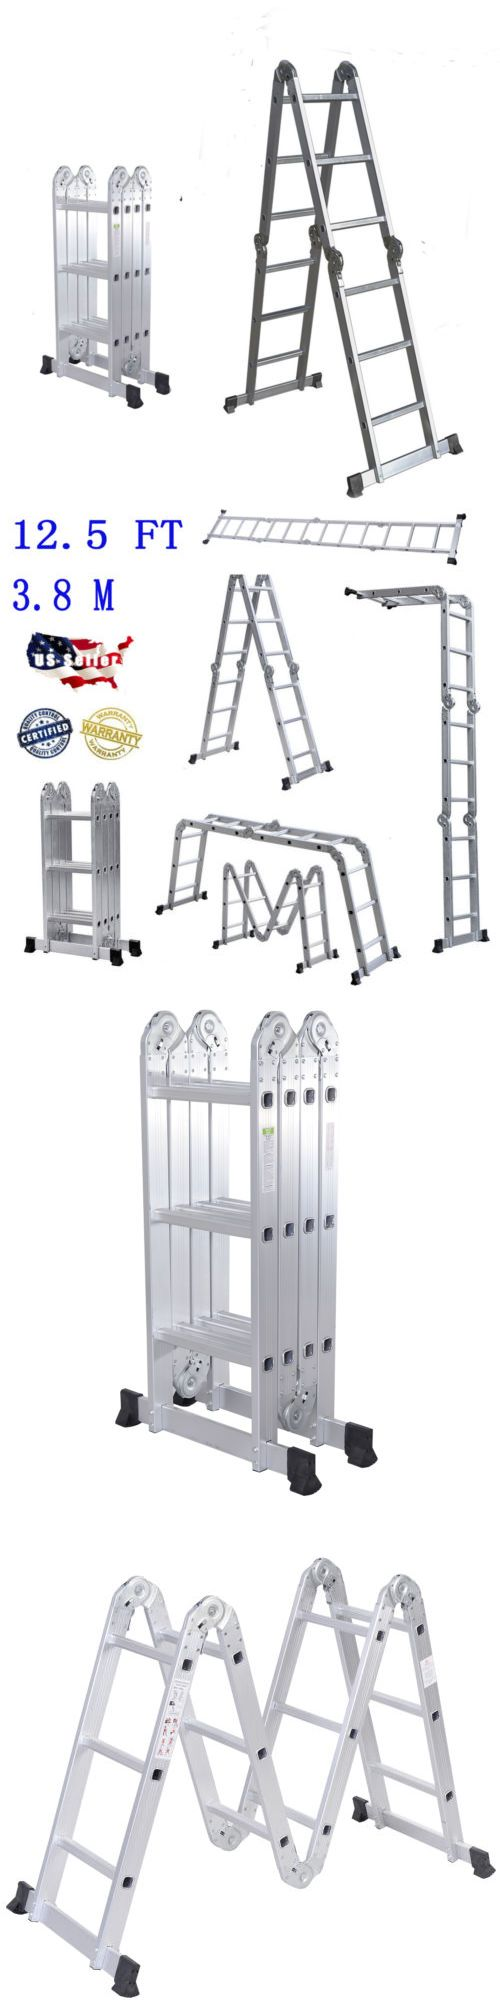 Ladders 112567: Multi-Purpose Aluminum Ladder Folding Step Ladder Scaffold Extendable Heavy Duty -> BUY IT NOW ONLY: $59.99 on eBay!